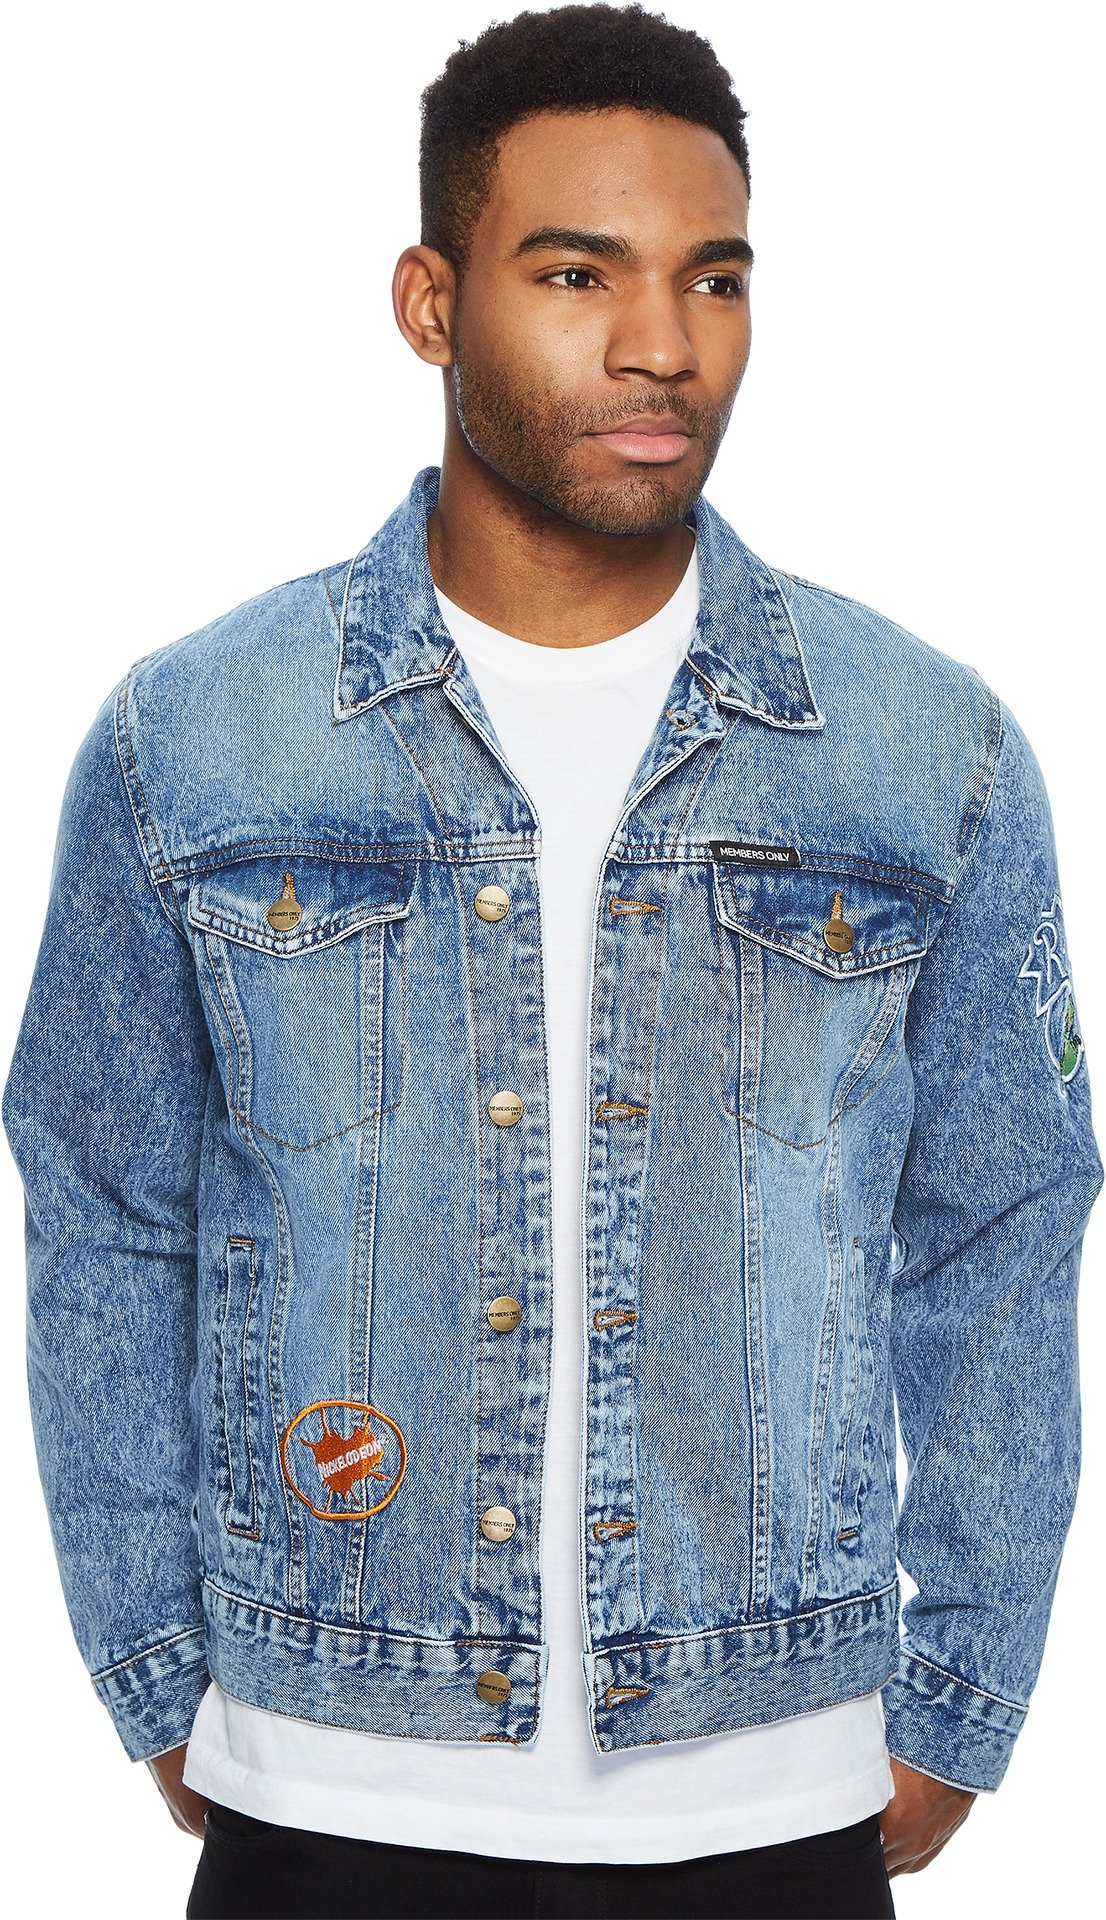 Members Only Men's Rugrats Trucker Jacket, Denim, Small by Members Only